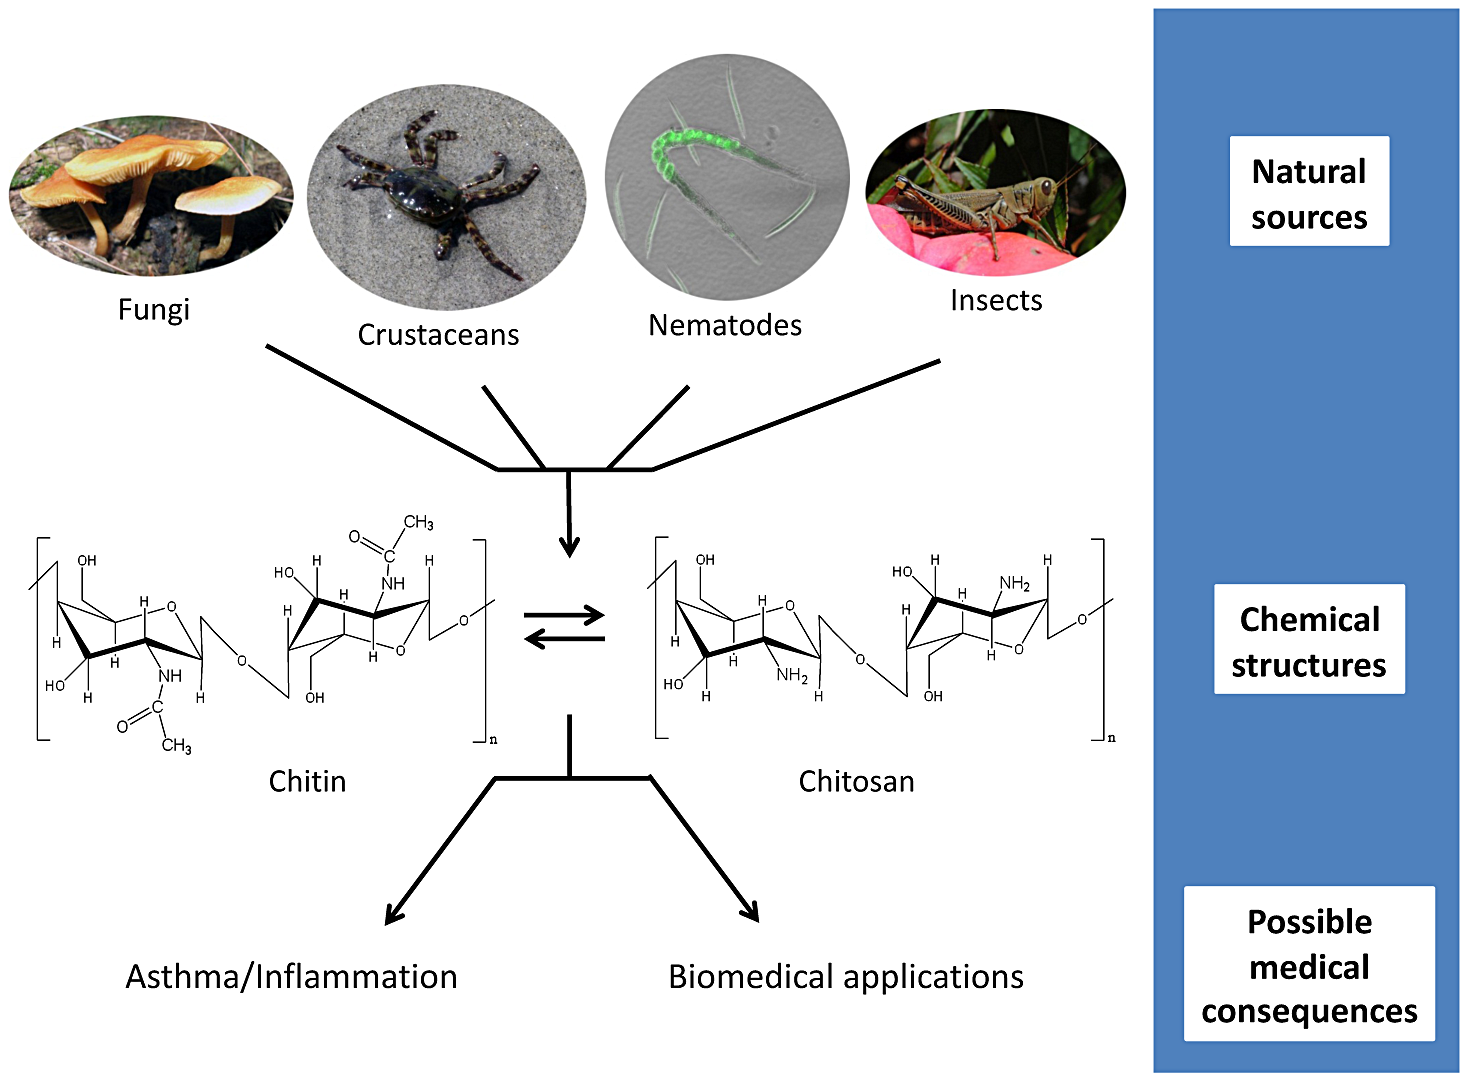 Chitin and chitosan: from source to consequence.